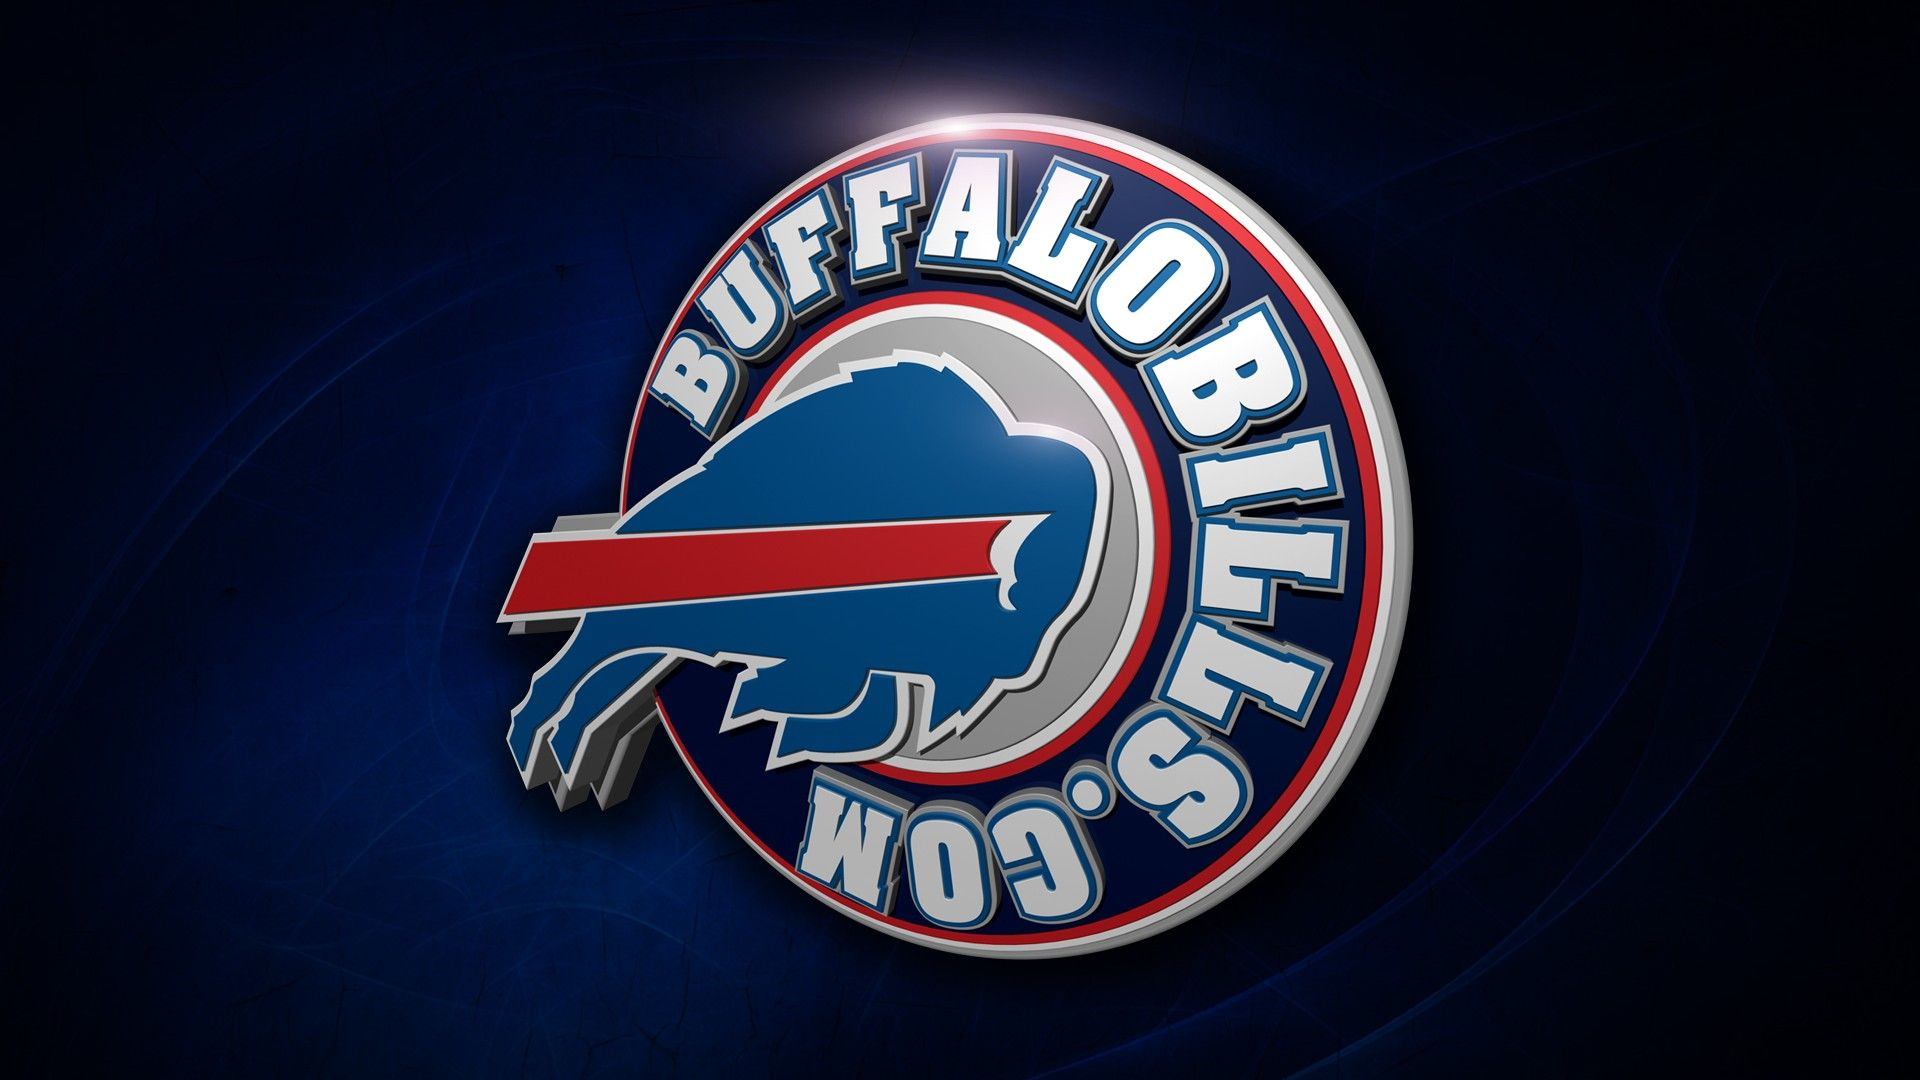 Buffalo Bills HD Wallpapers Wallpapers Buffalo bills logo 1920x1080